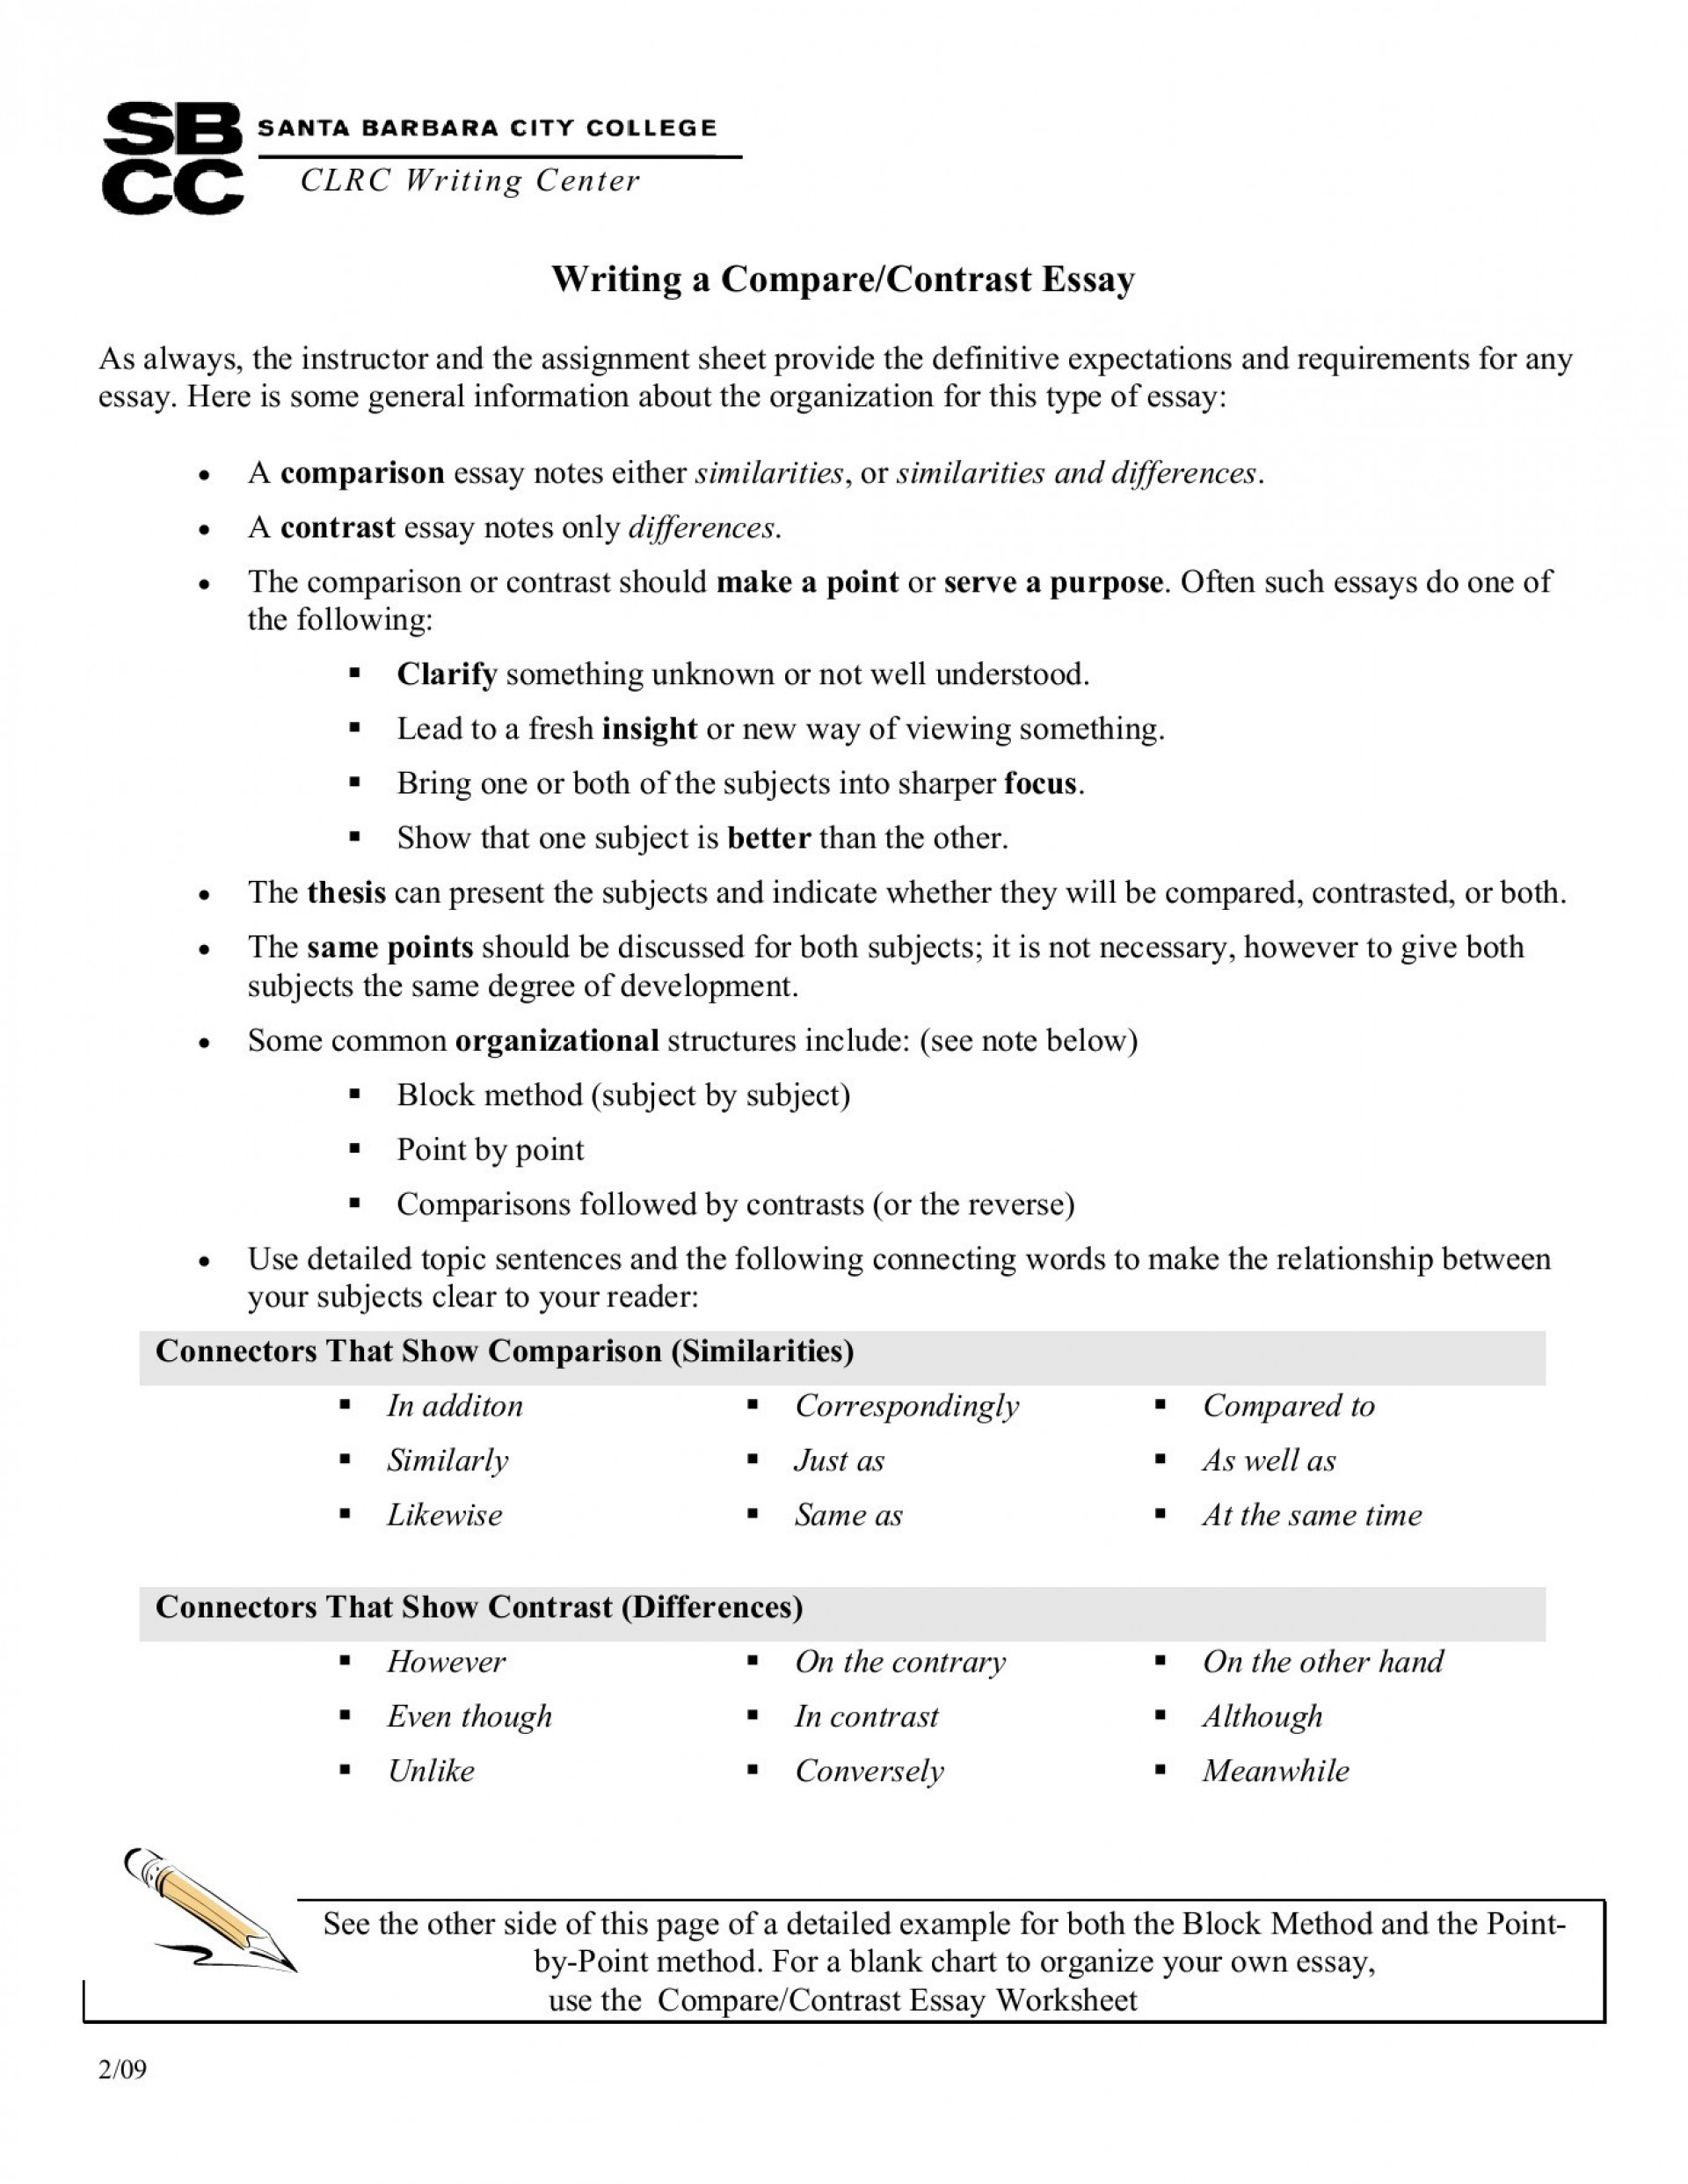 014 Compare Essay Beautiful Contrast Topics Ielts Examples College Middle School 1920